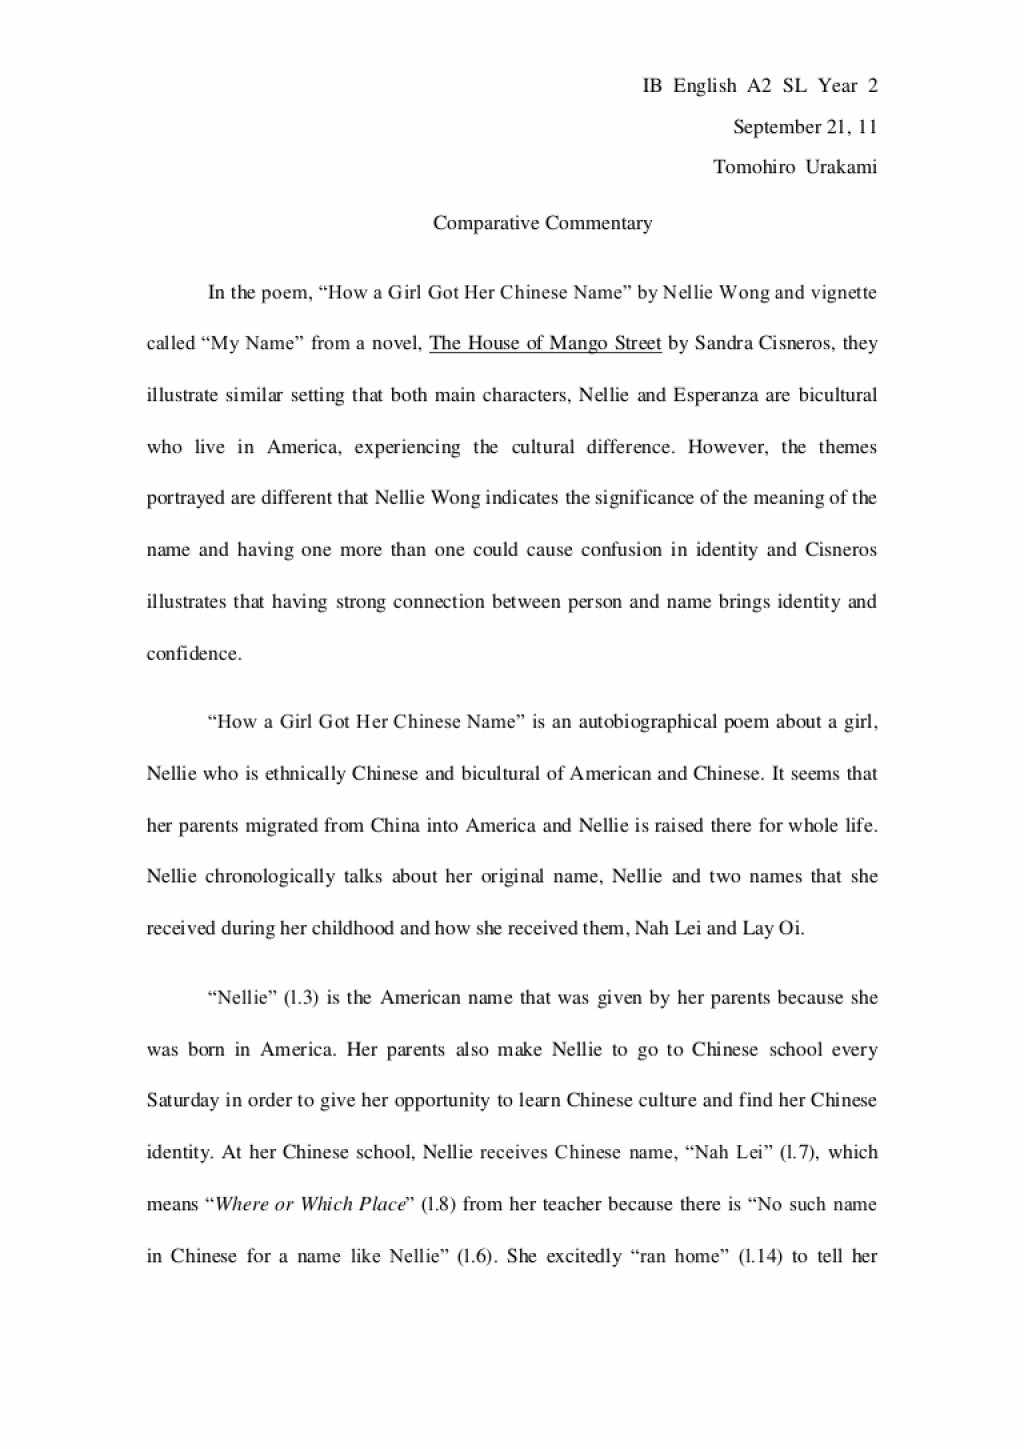 007 Essay Example Comparativeessaydraft Phpapp02 Thumbnail Comparative Beautiful Sample Vce English Introduction Template Large